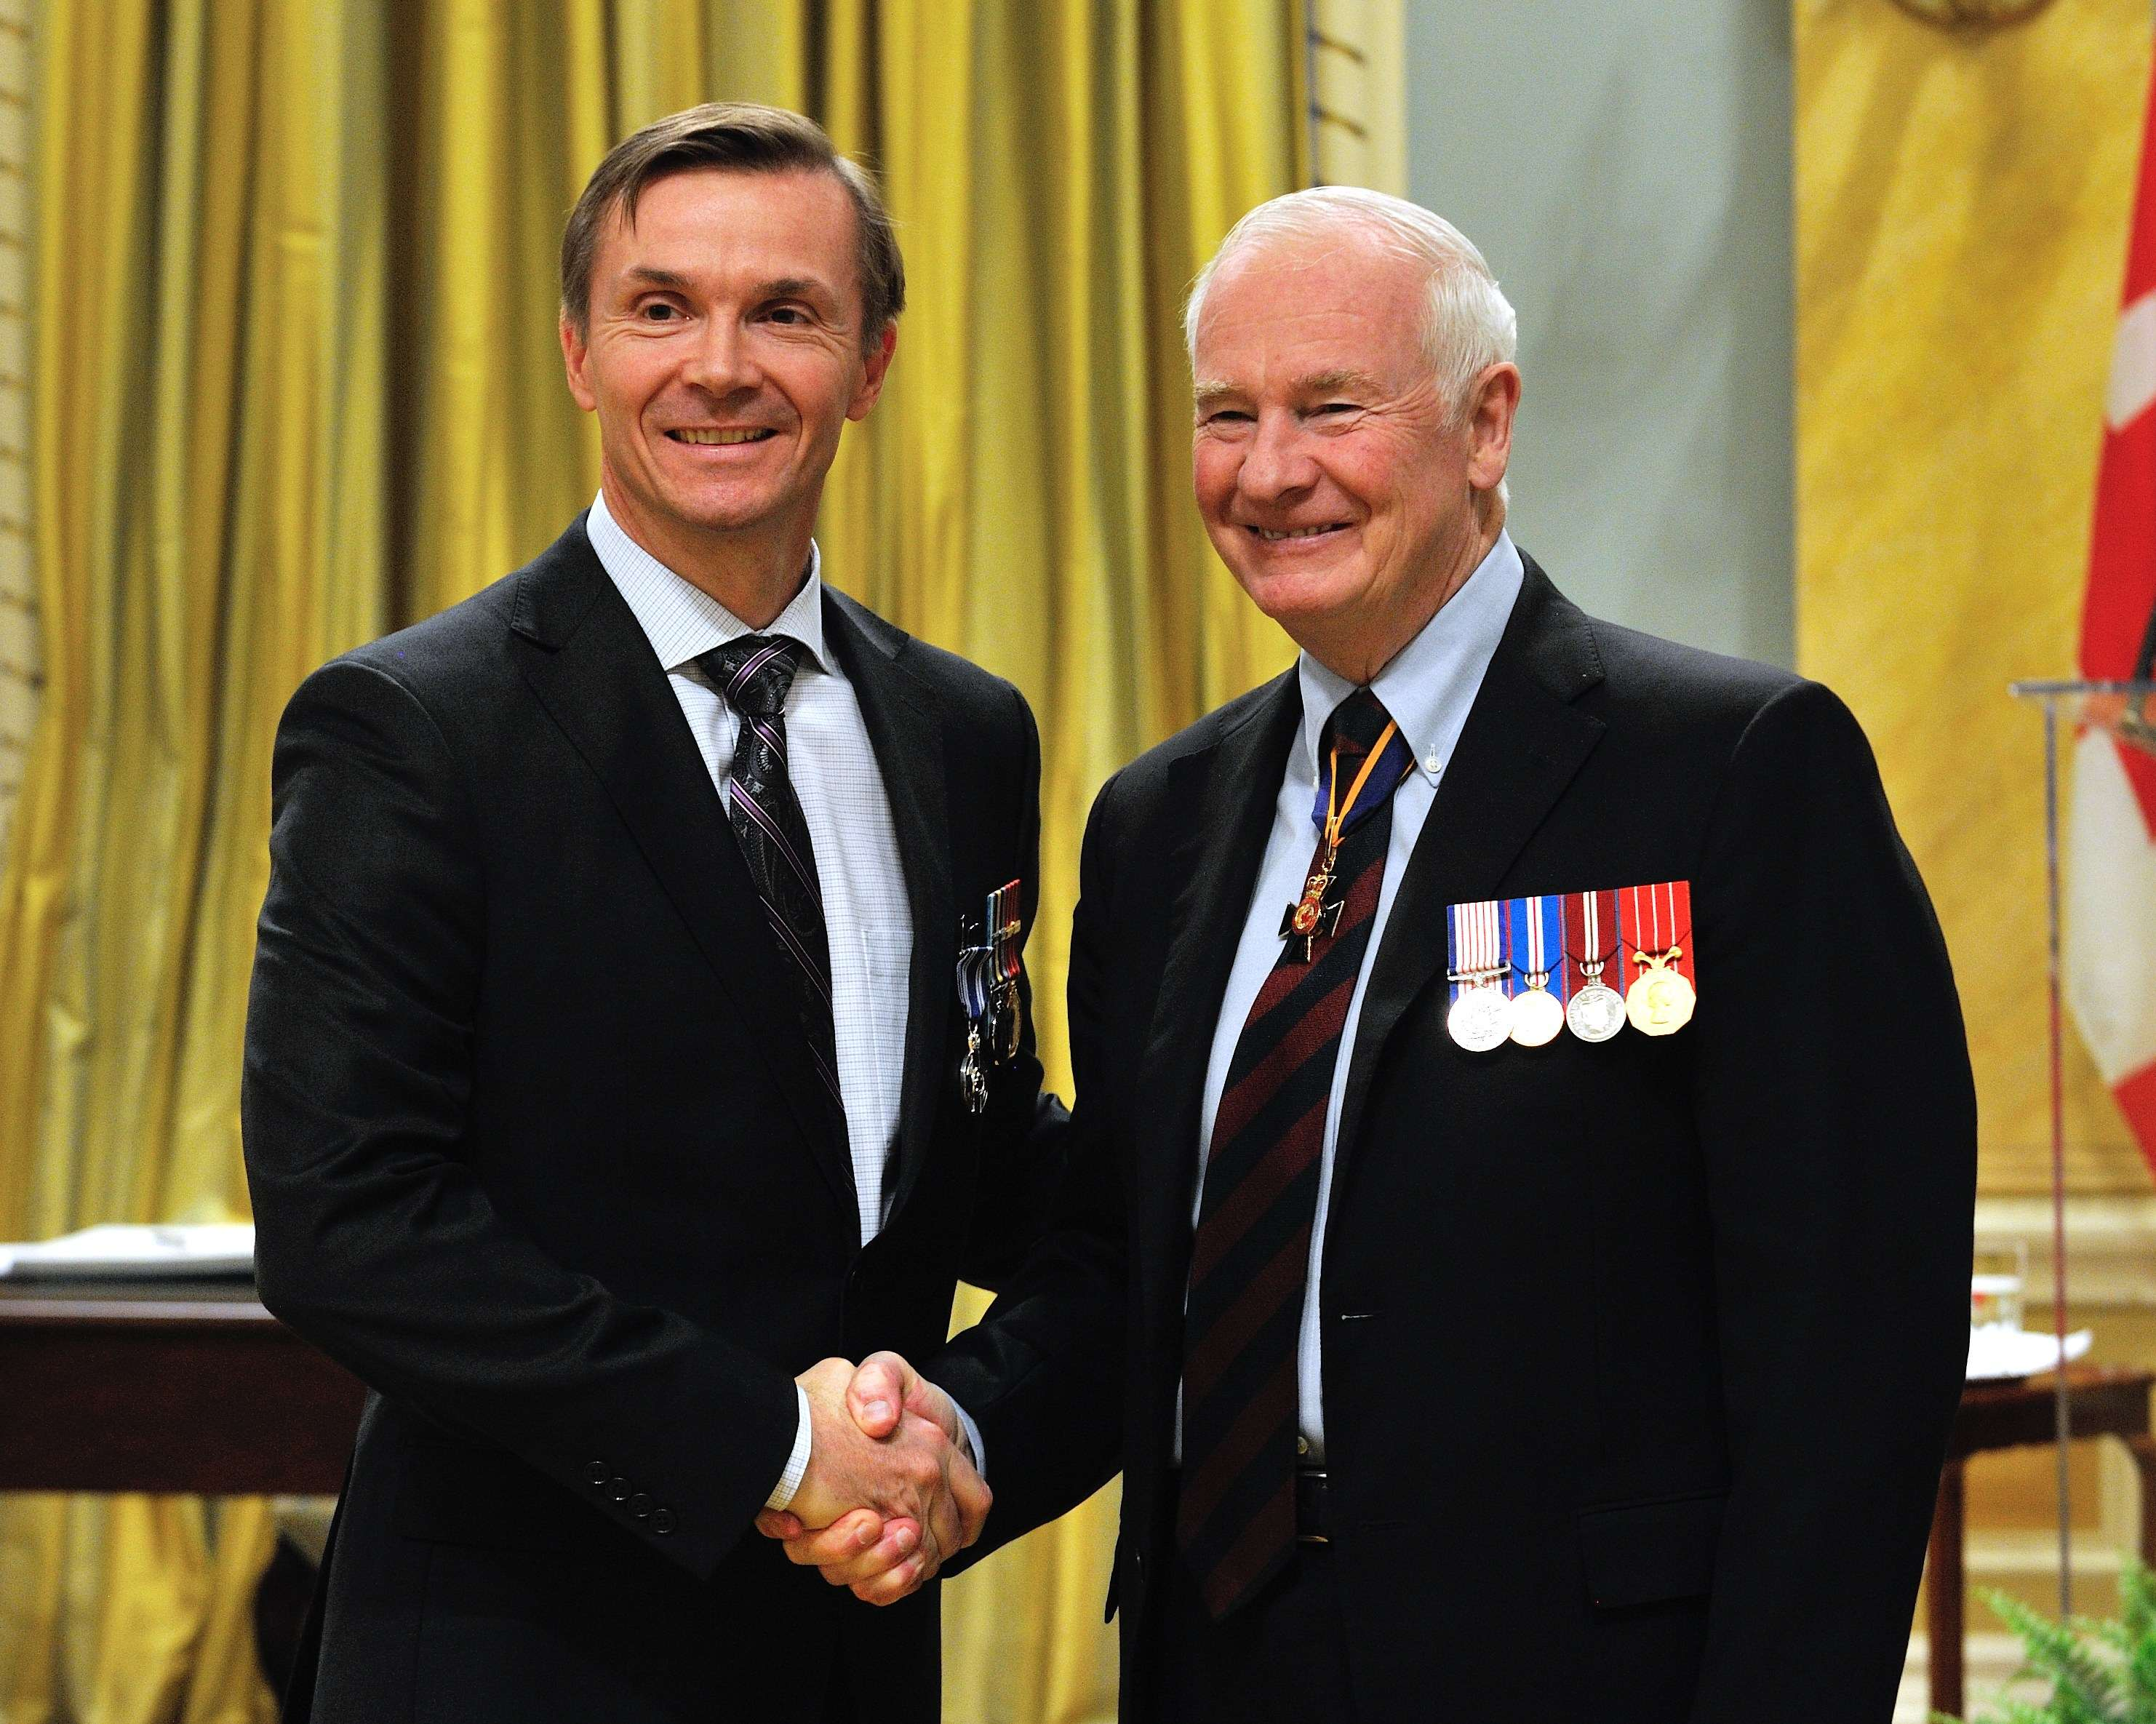 Commander Simon Rupert Hughes, M.S.M., C.D., received the Meritorious Service Medal (Military Division). Between August 2010 and January 2012, Commander Hughes contributed strategic benefit to the Royal Canadian Navy. He was instrumental in conceiving and developing innovative approaches, which made sure of the readiness of naval personnel for the introduction of the internationally successful REGULUS program and the adoption of the Single Fleet Scheme of Manoeuvre. Commander Hughes' leadership, strategic wisdom and groundbreaking work helped ensure the future success of the Navy, the Canadian Forces and Canada.